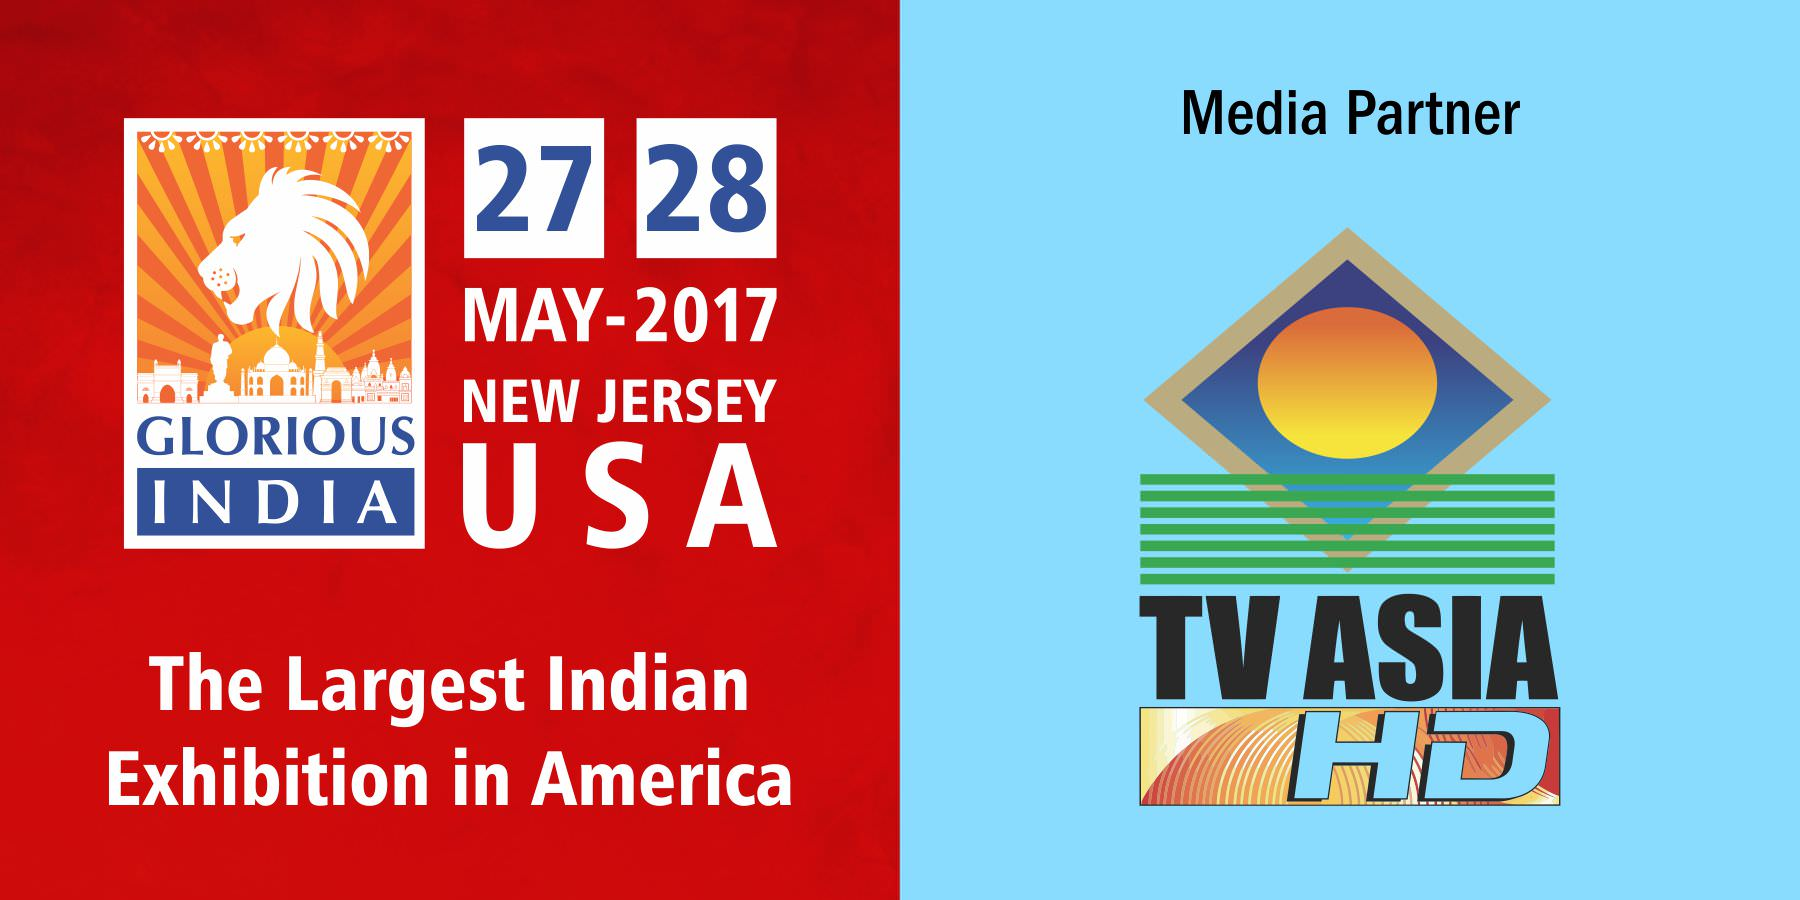 Glorious India Expo TV Asia as the Media Partner